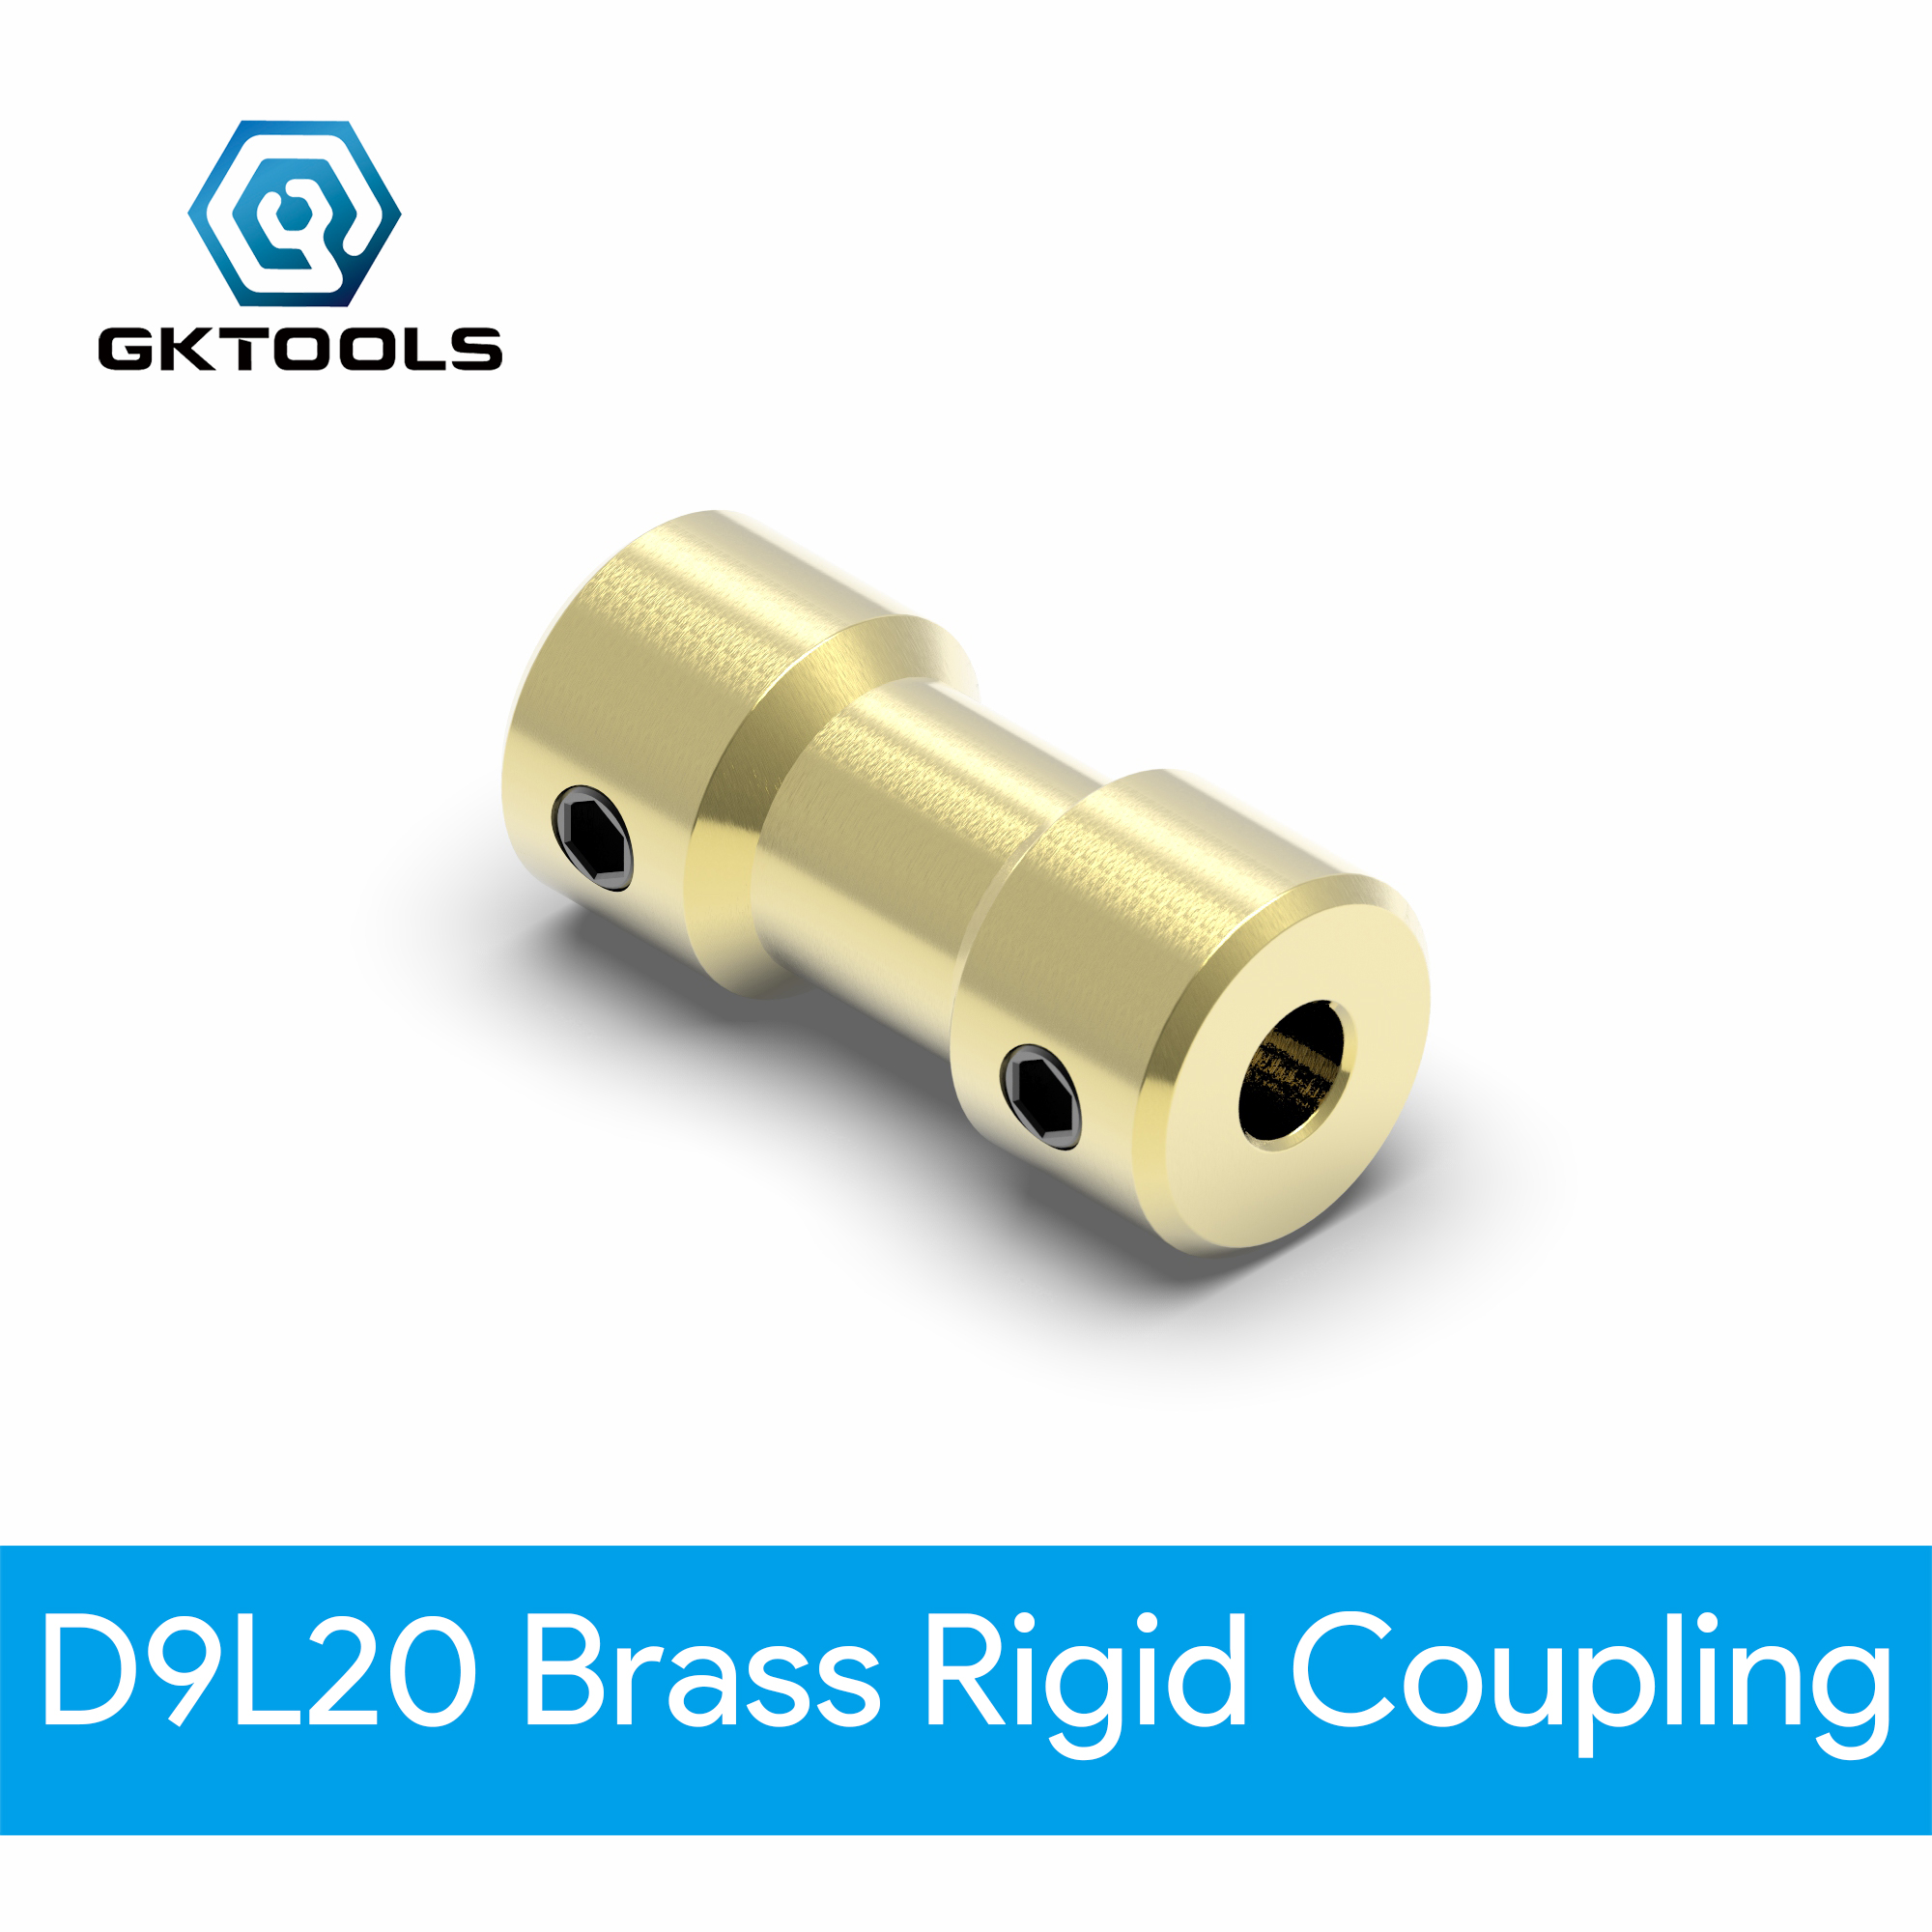 GKTOOLS D9L20 2mm/2.3mm/3mm/3.17mm/4mm/5mm/6mm Brass Flexible Motor Shaft Coupling Coupler Motor Transmission Connector image